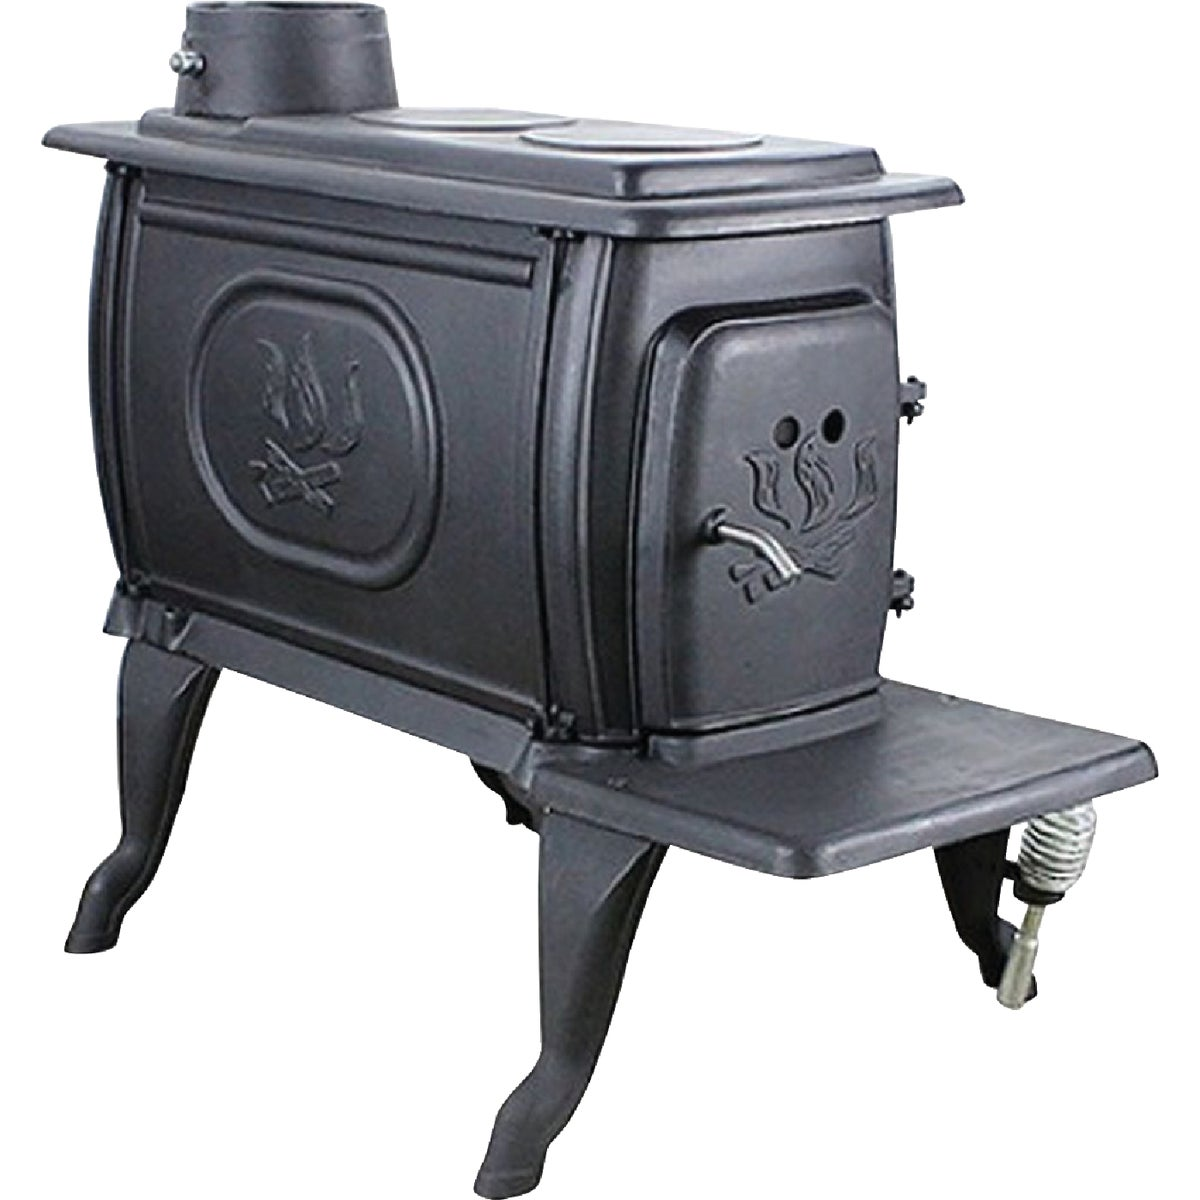 CAST IRON BOXWOOD STOVE - 1261 by U S Stove Company